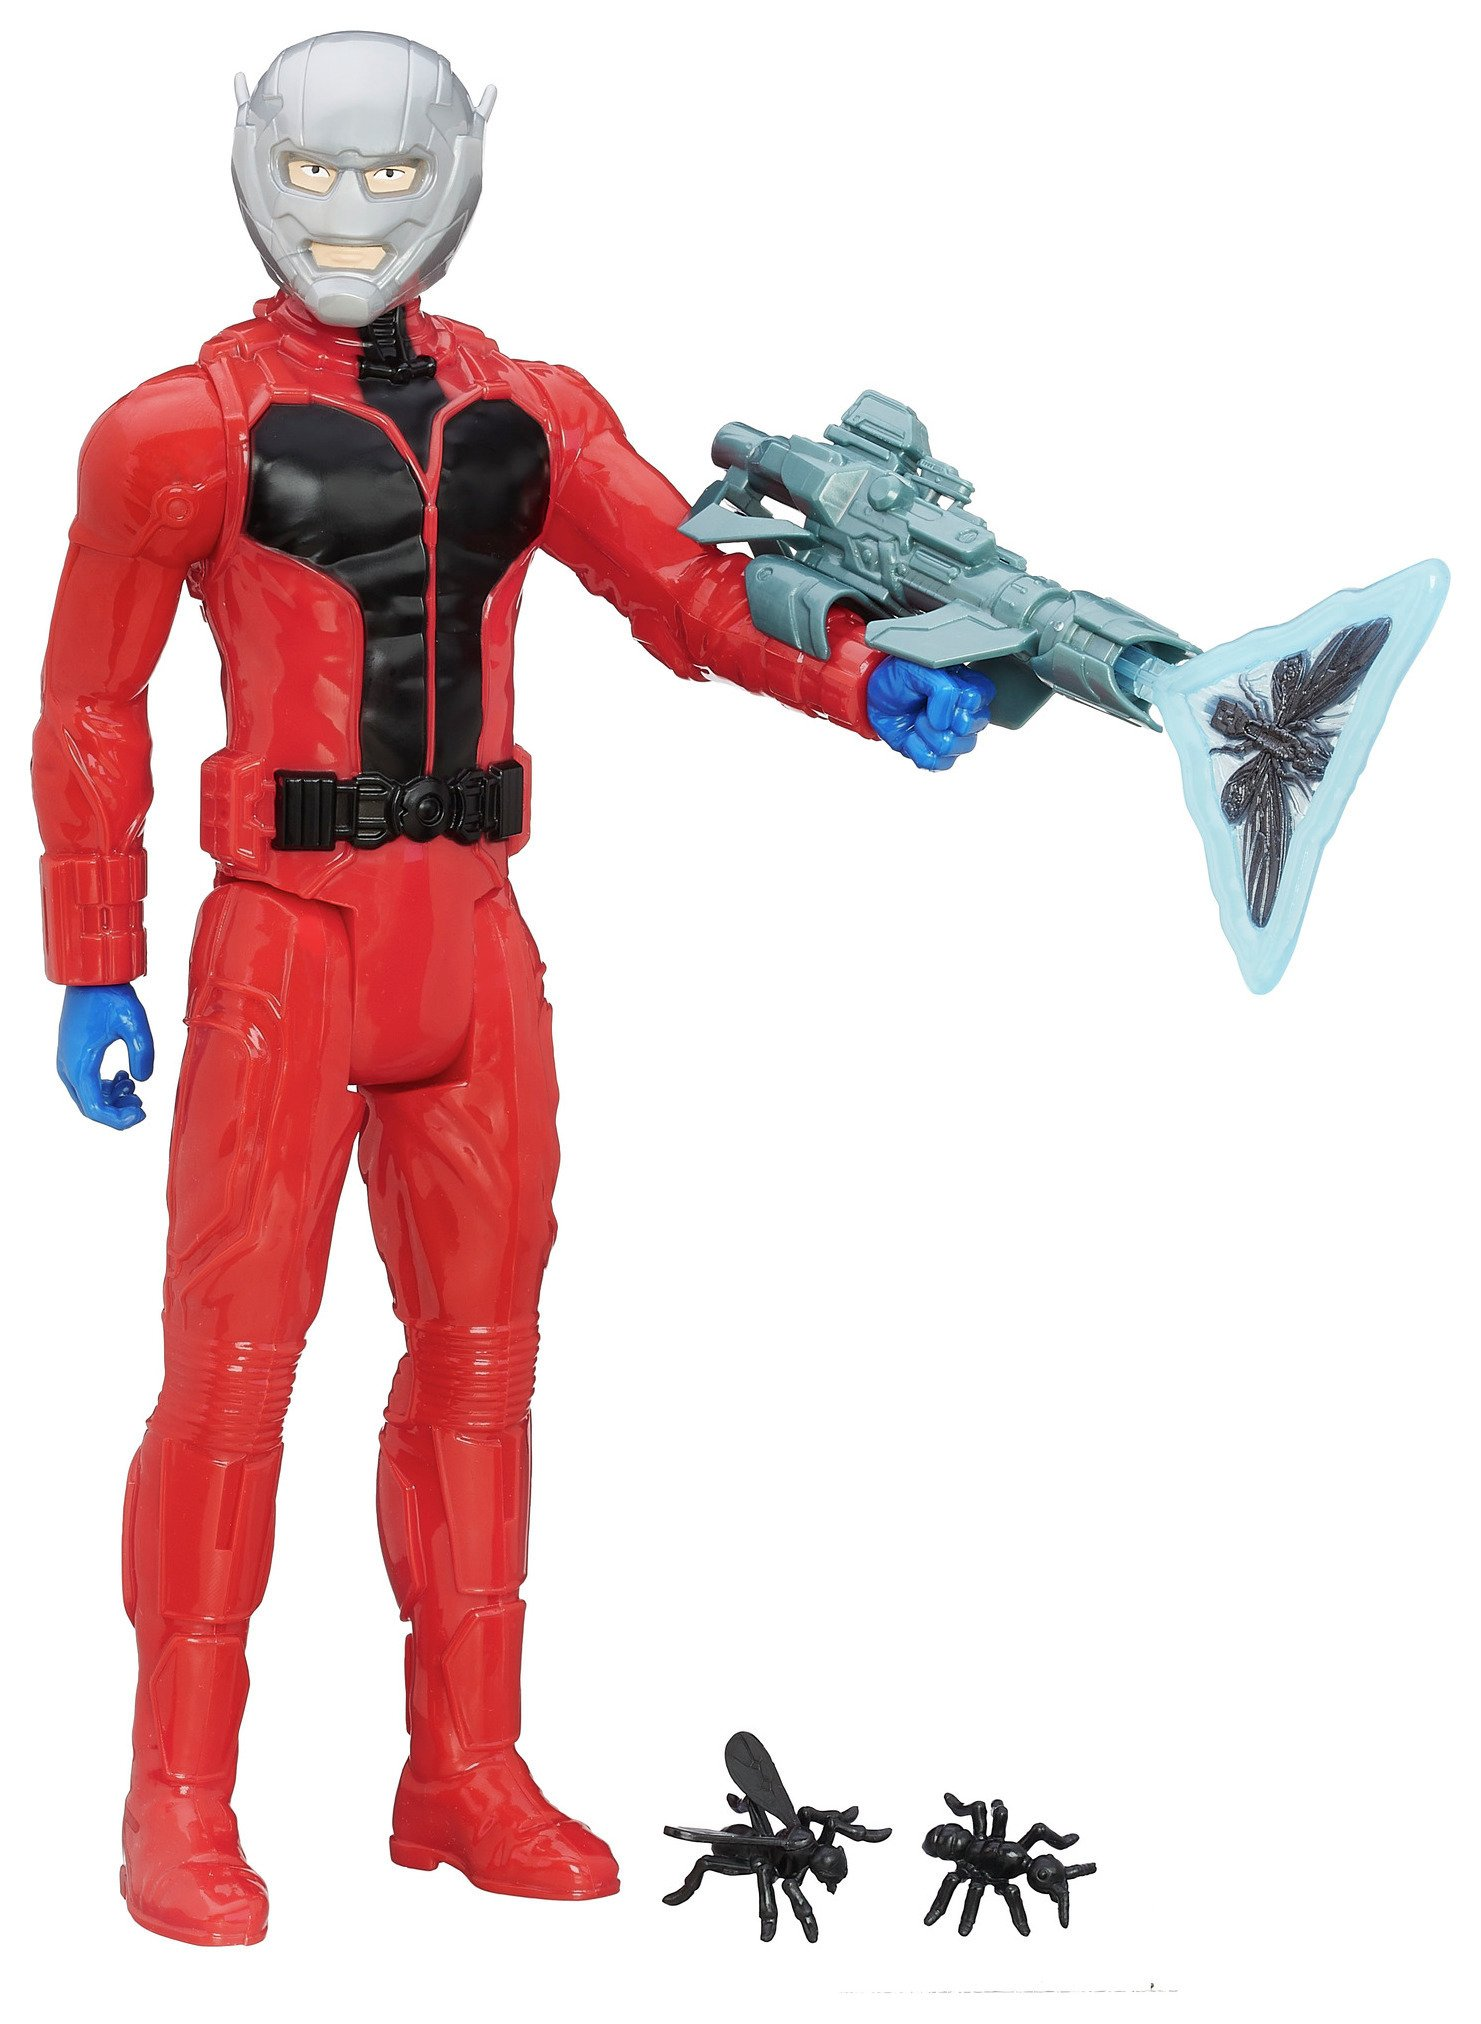 Image of Marvel Titan Hero Series Ant-Man with Gear.